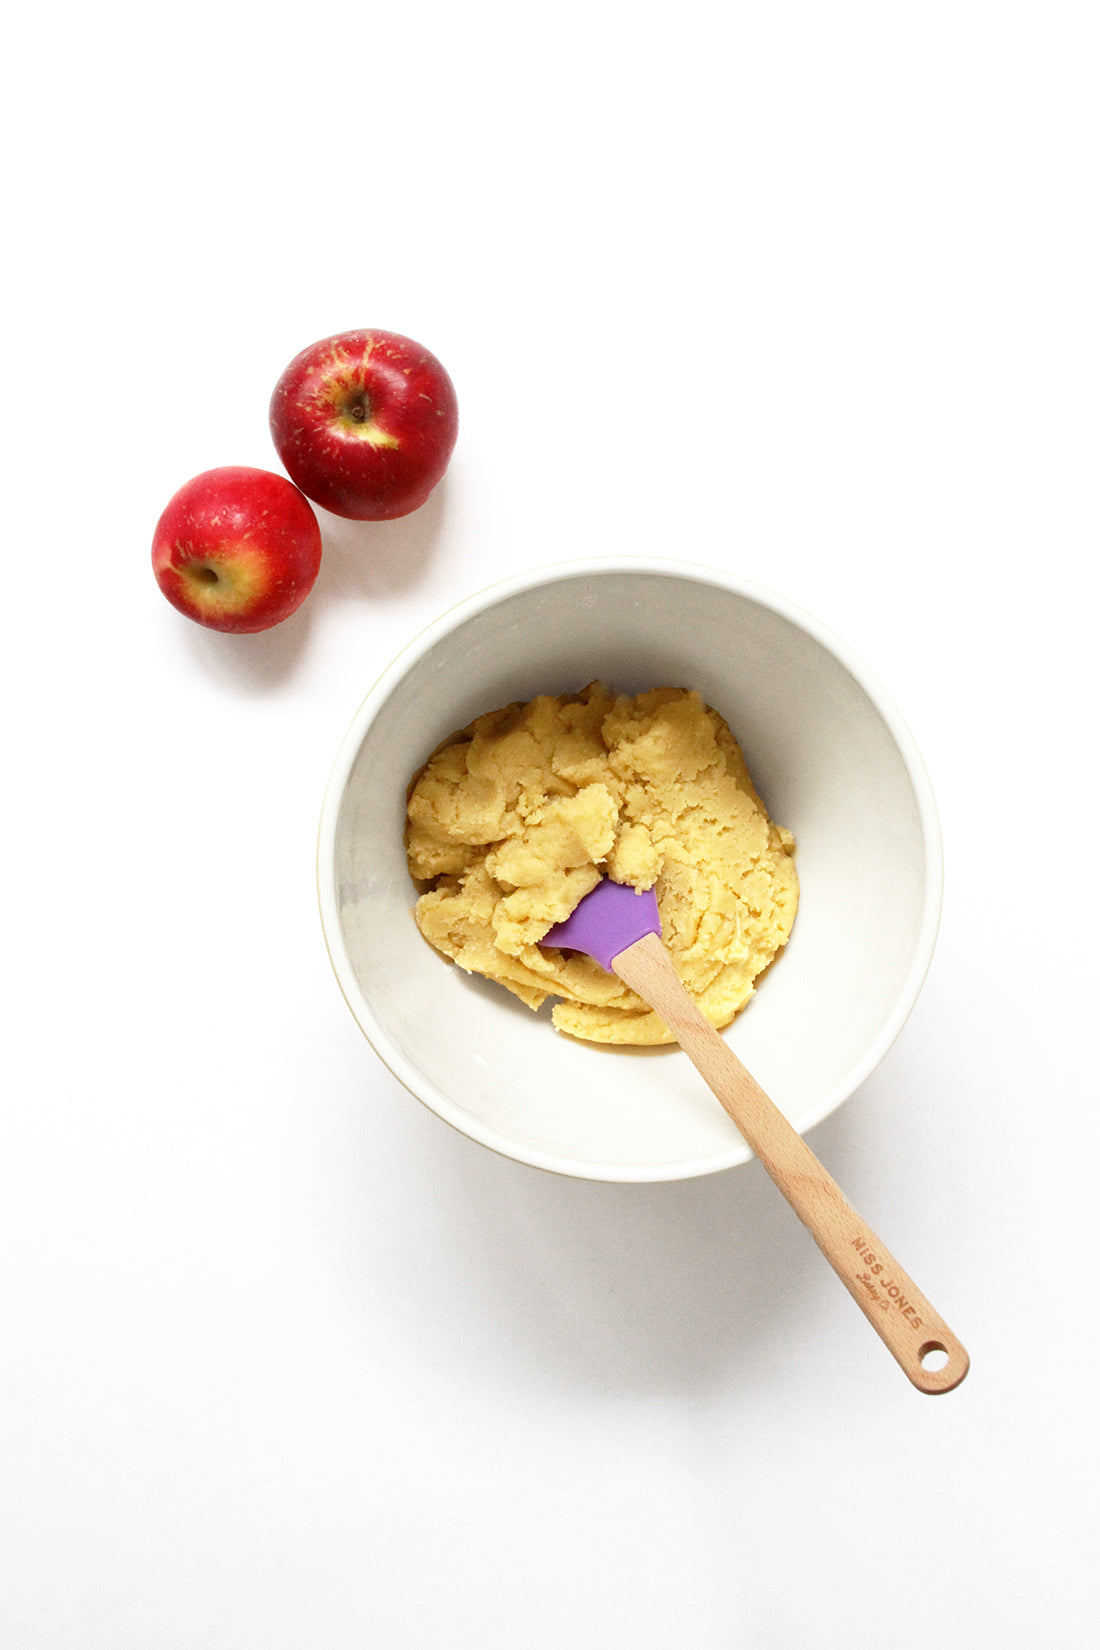 Image of a mixing bowl with batter for Miss Jones Baking Co Caramel Apple Bars next to two red apples